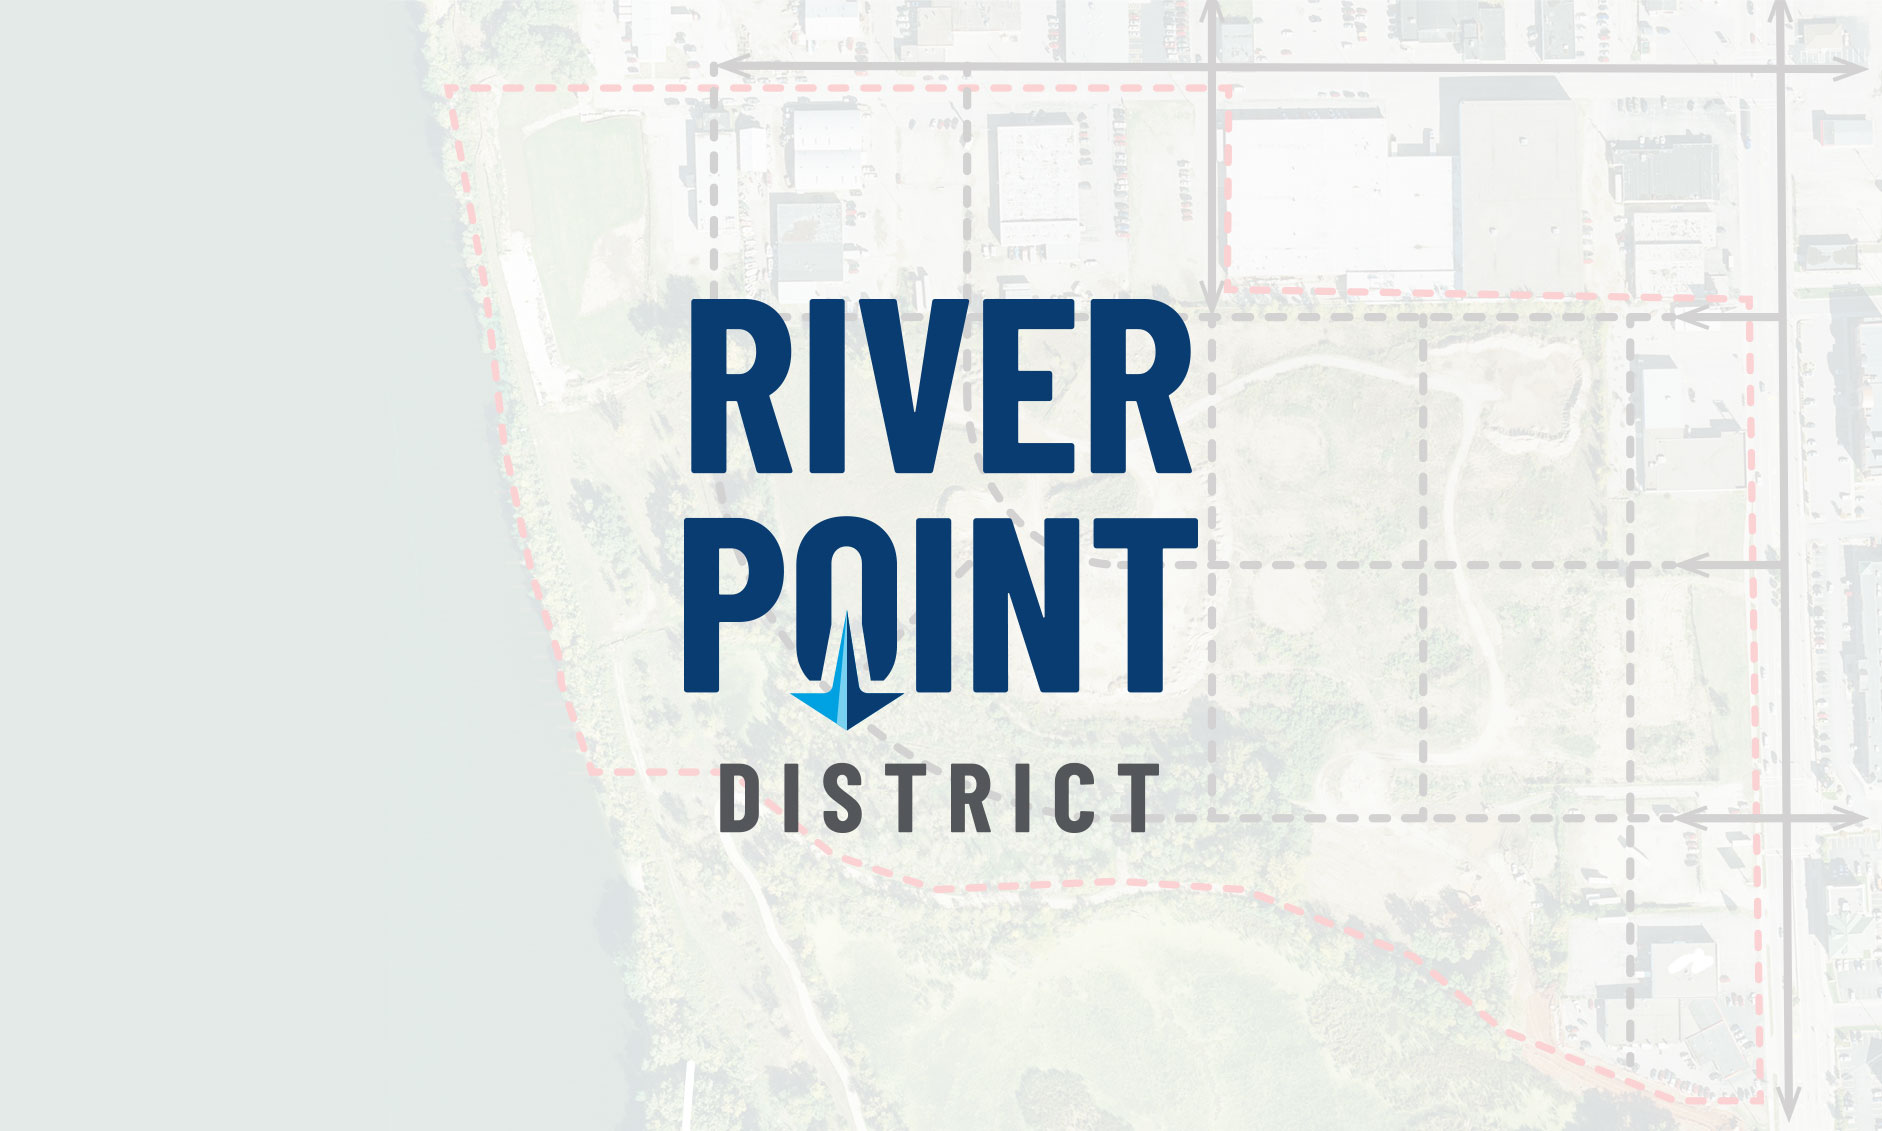 River Point District